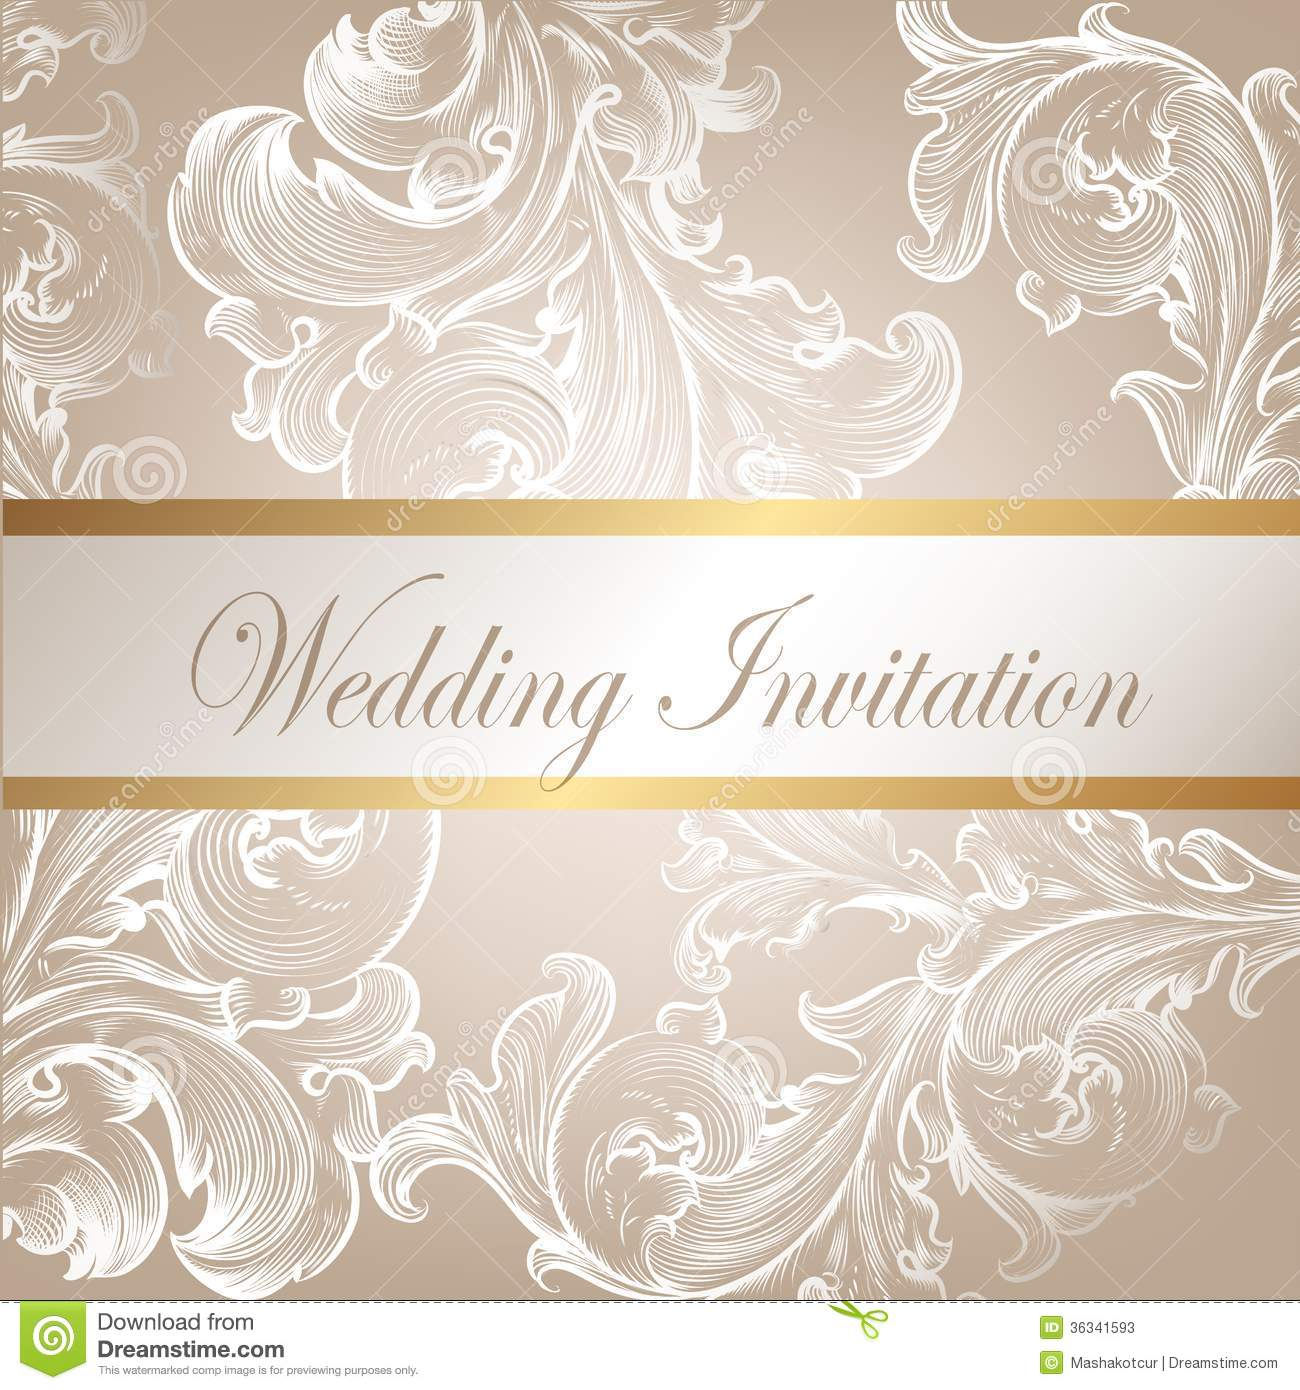 Wedding Invitation Download Free is beautiful invitations layout